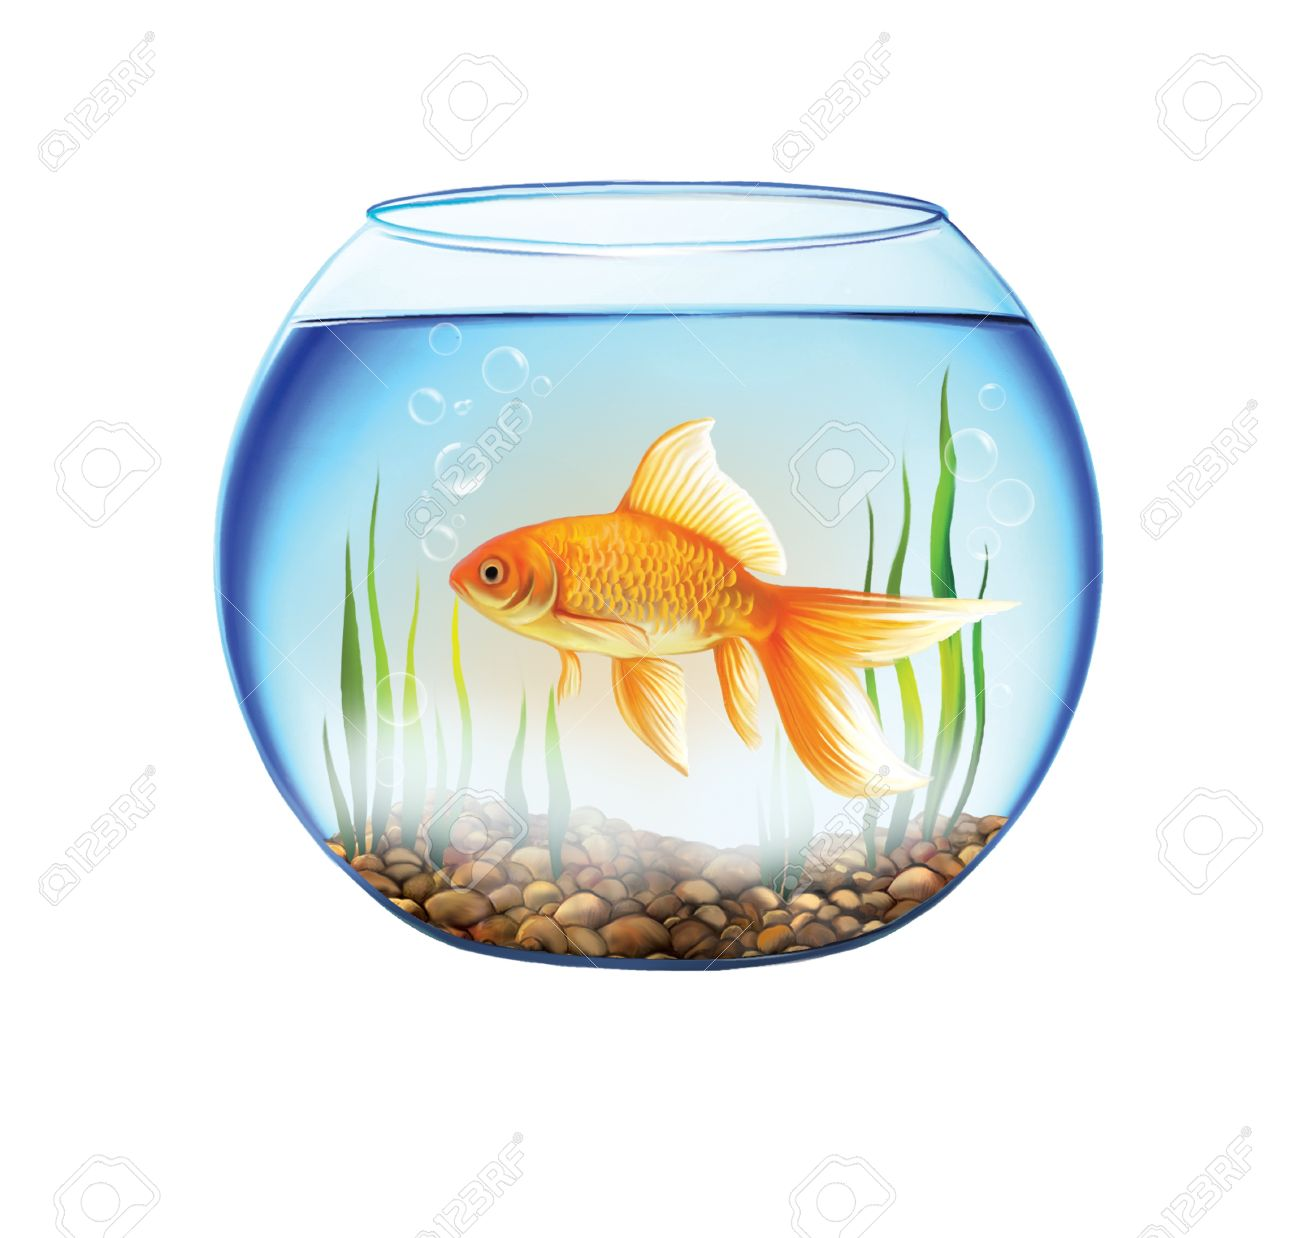 Freshwater fish bowl - Gold Fish Bowl Gold Fish In A Round Aquarium With Stones And Plants Close Up